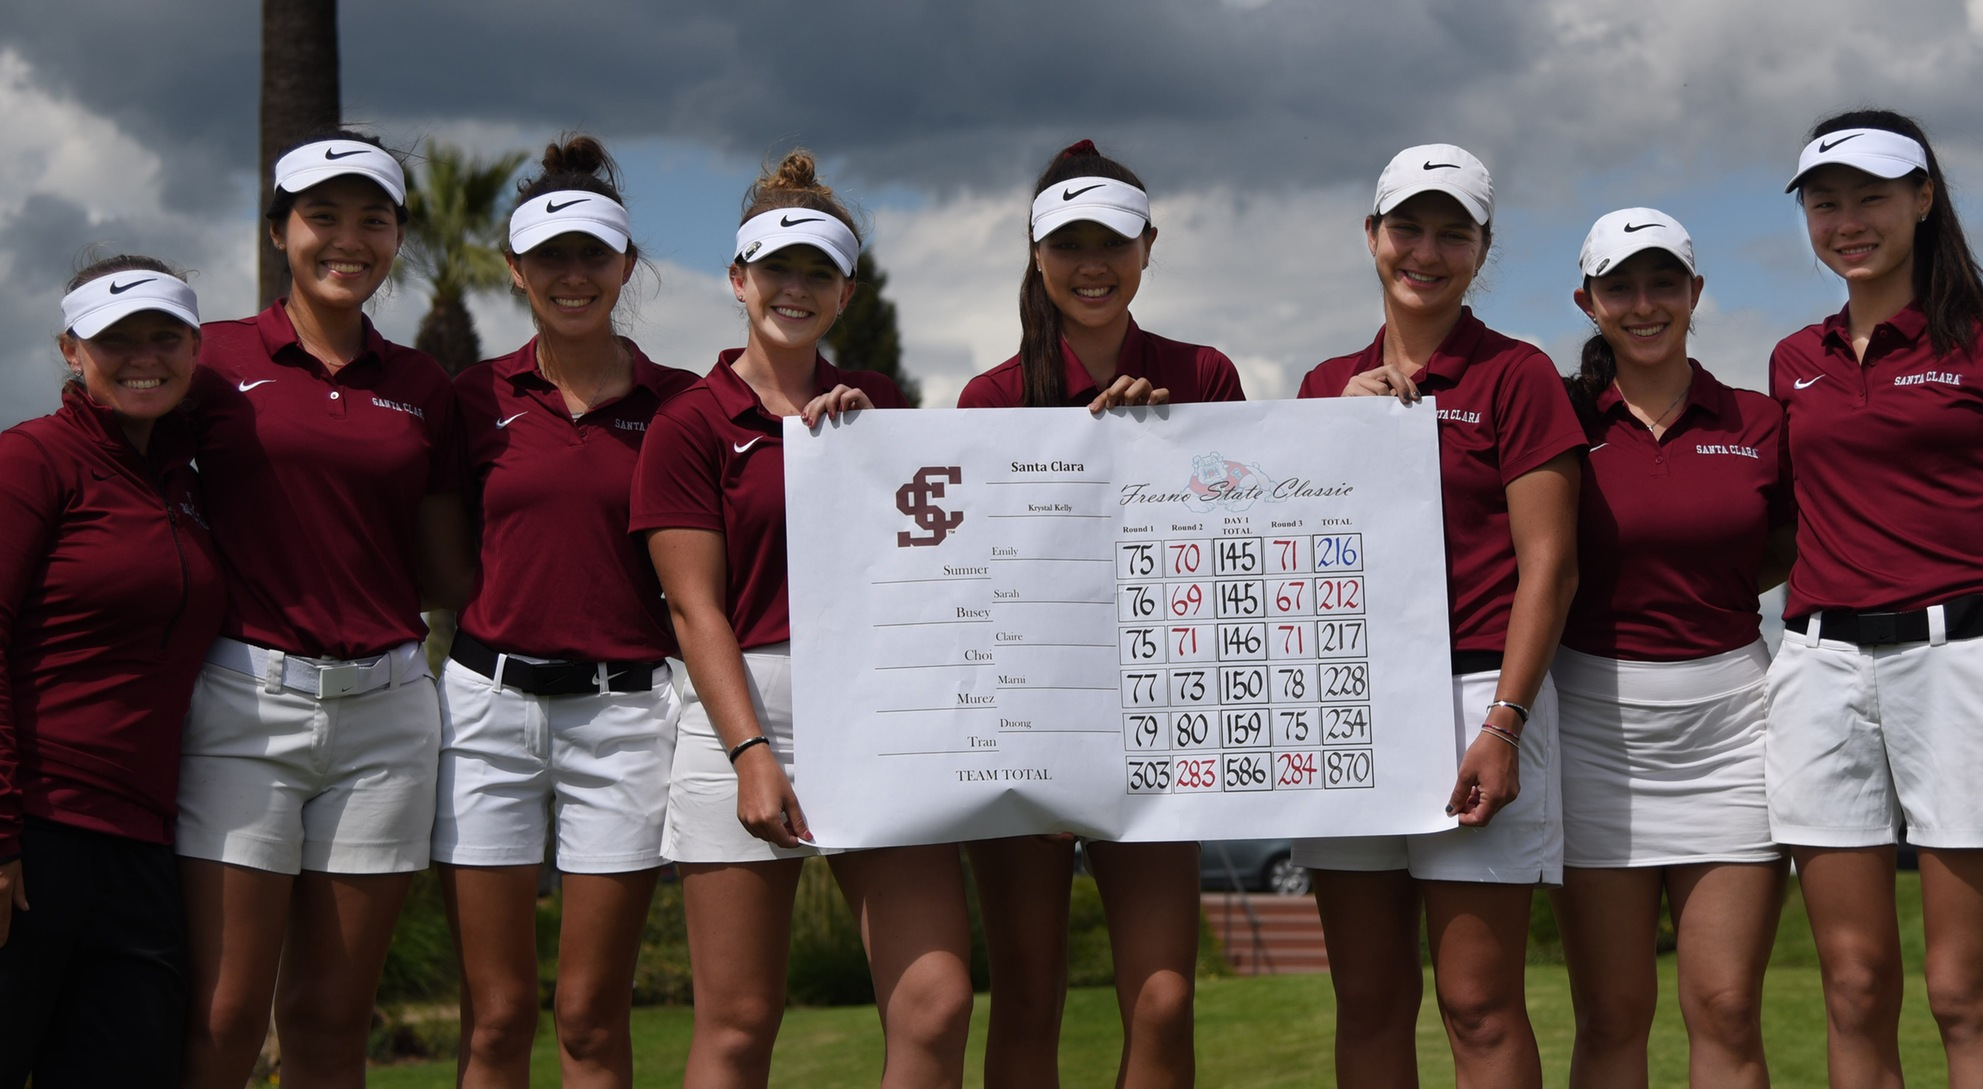 Busey Grabs Podium Finish; Three Women's Golfers Among Top 10 At Fresno State Classic